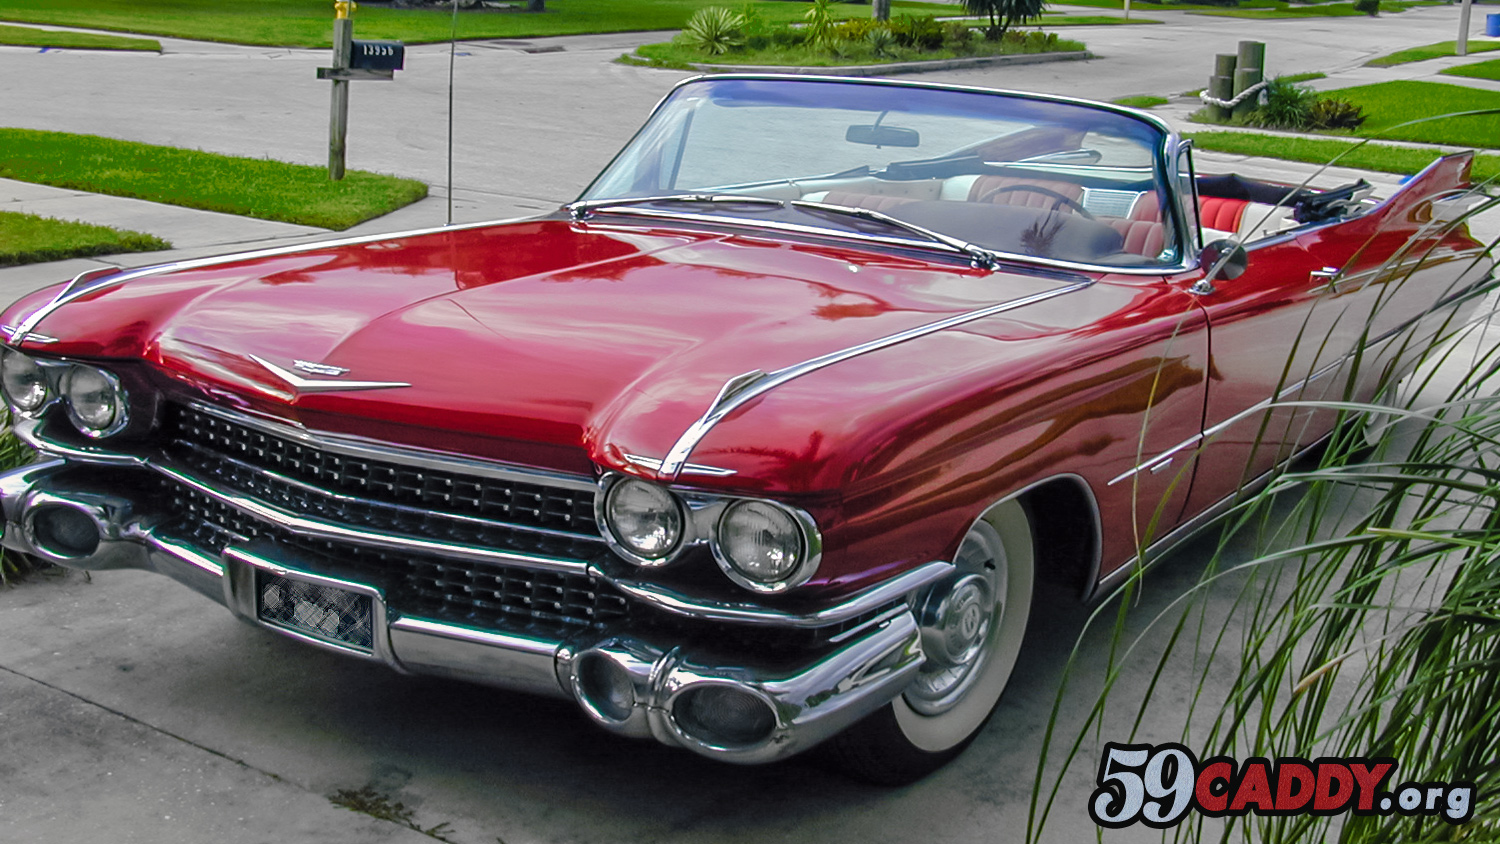 Red 1959 Cadillac Convertible 1959 Red Cadillac Convertible